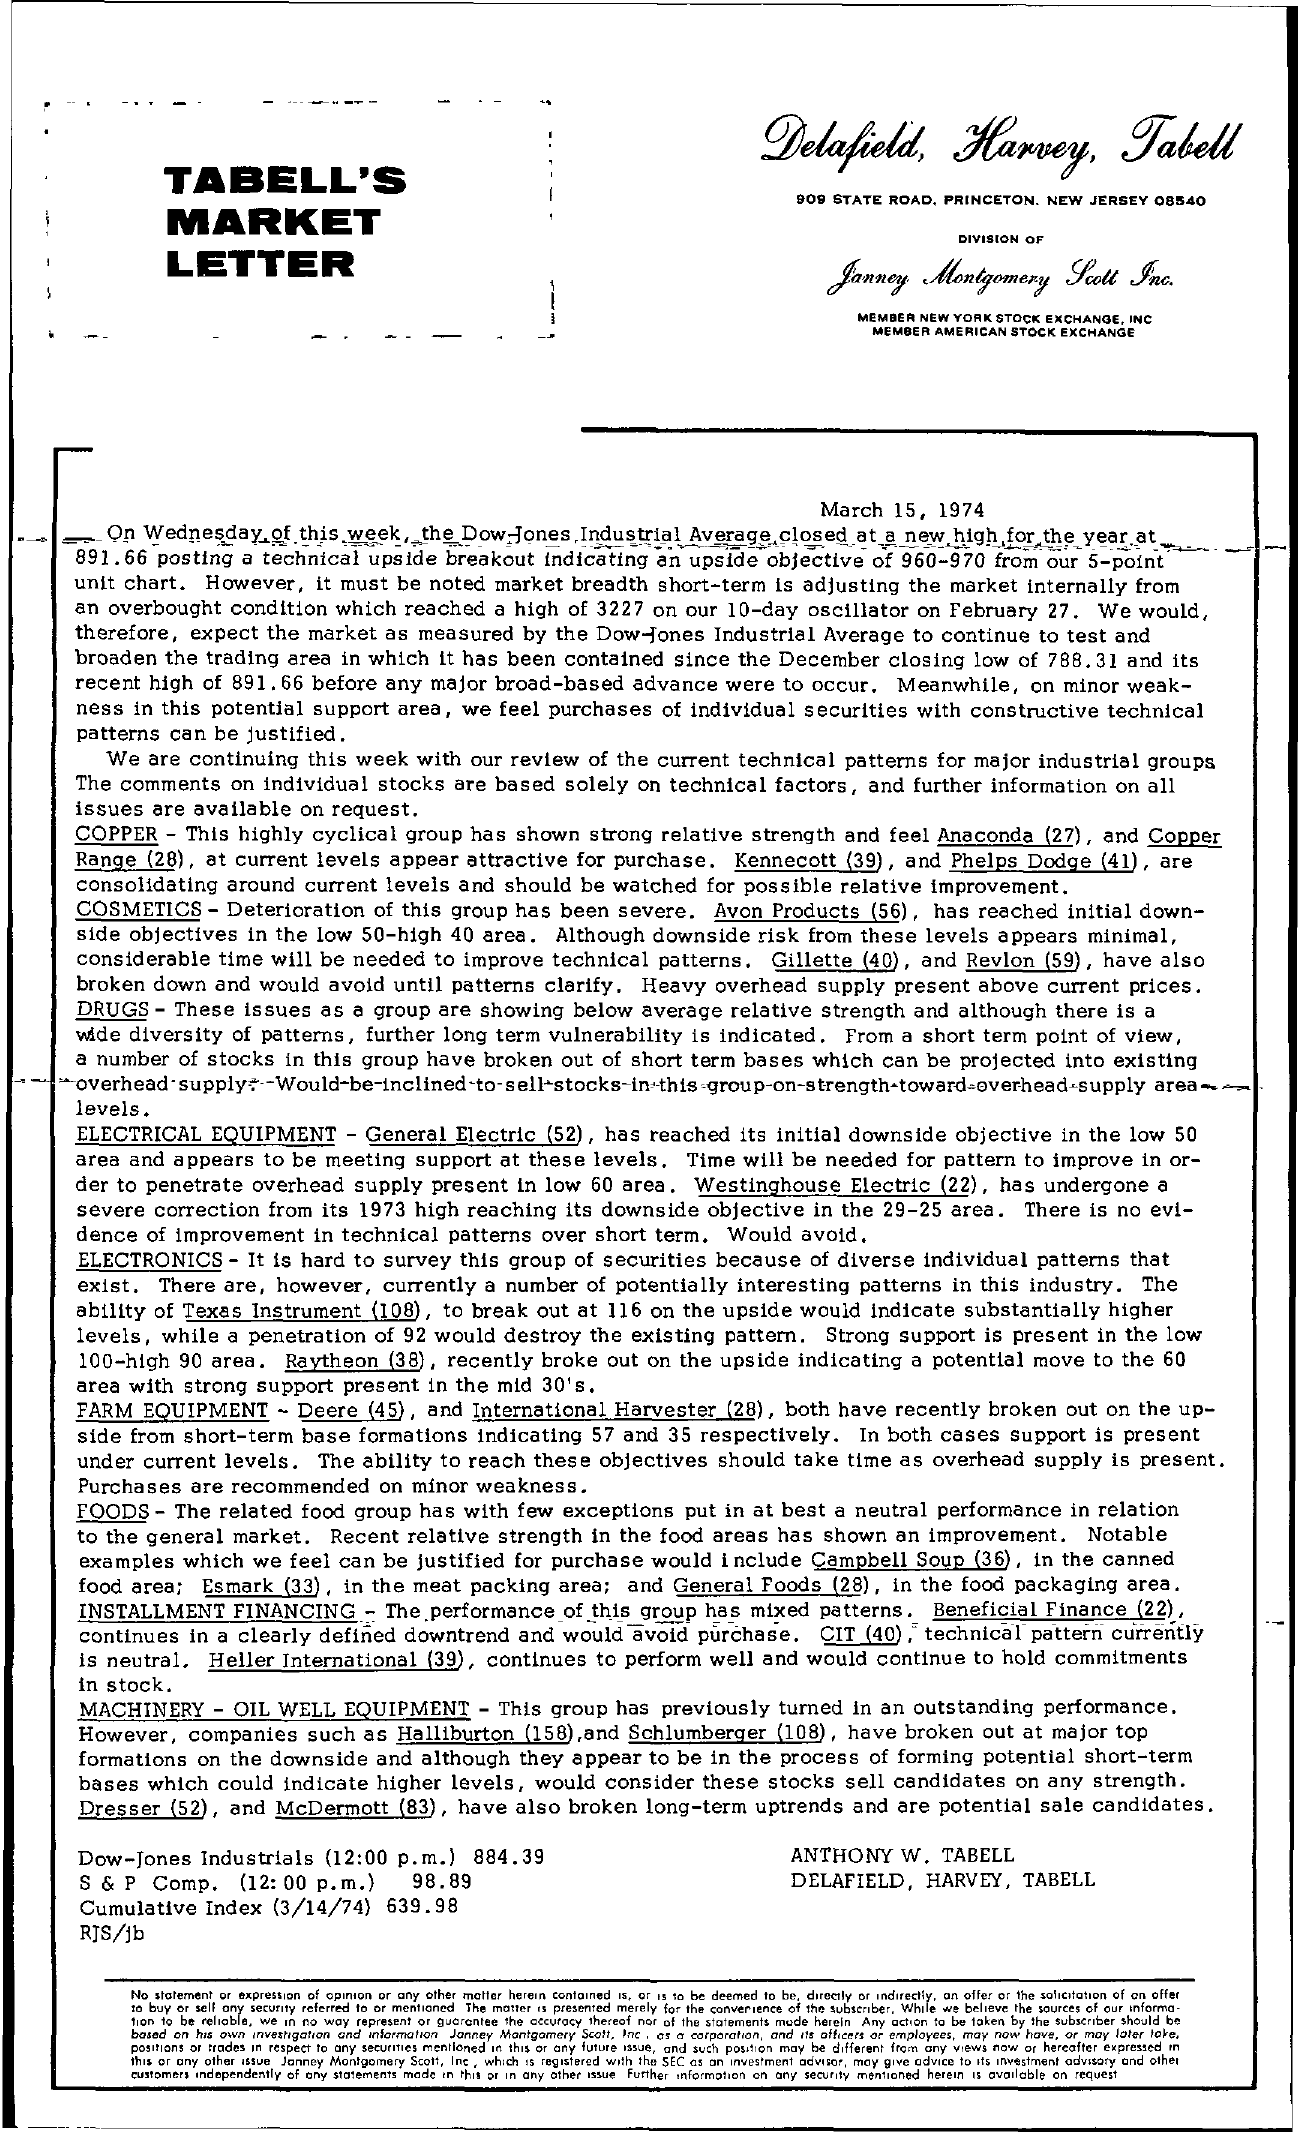 Tabell's Market Letter - March 15, 1974